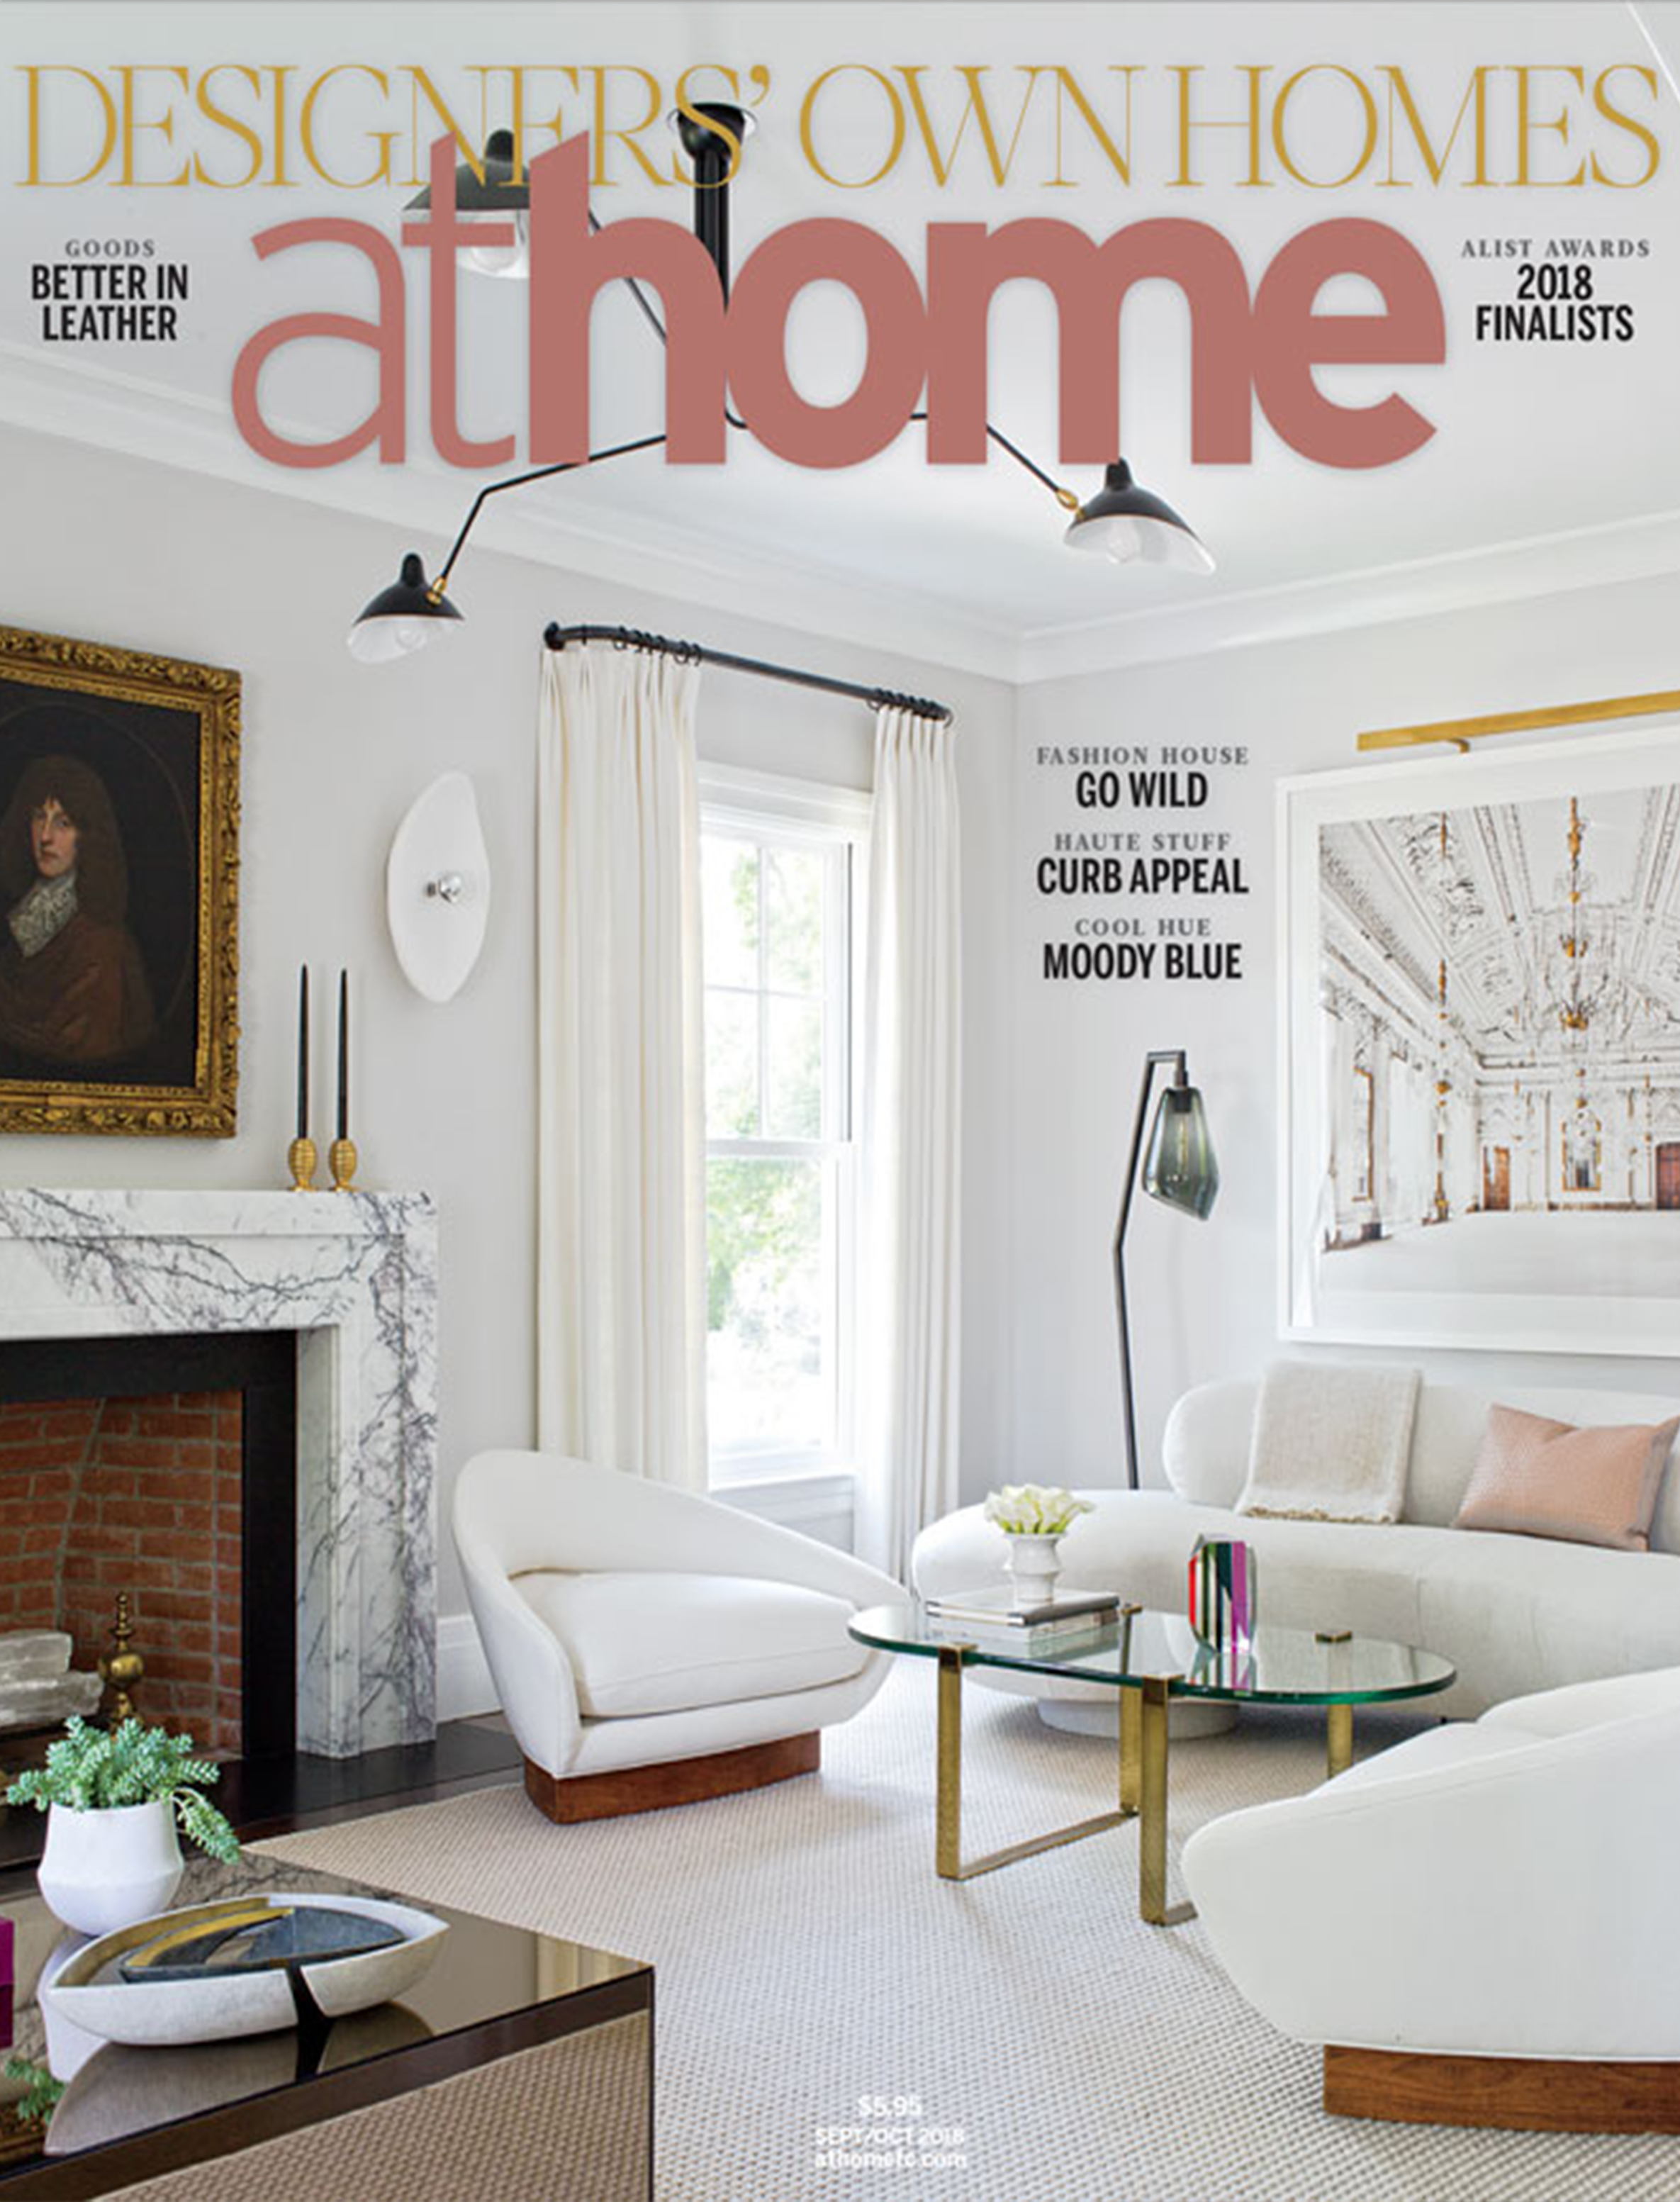 At Home Magazine, A-List Preview 2018